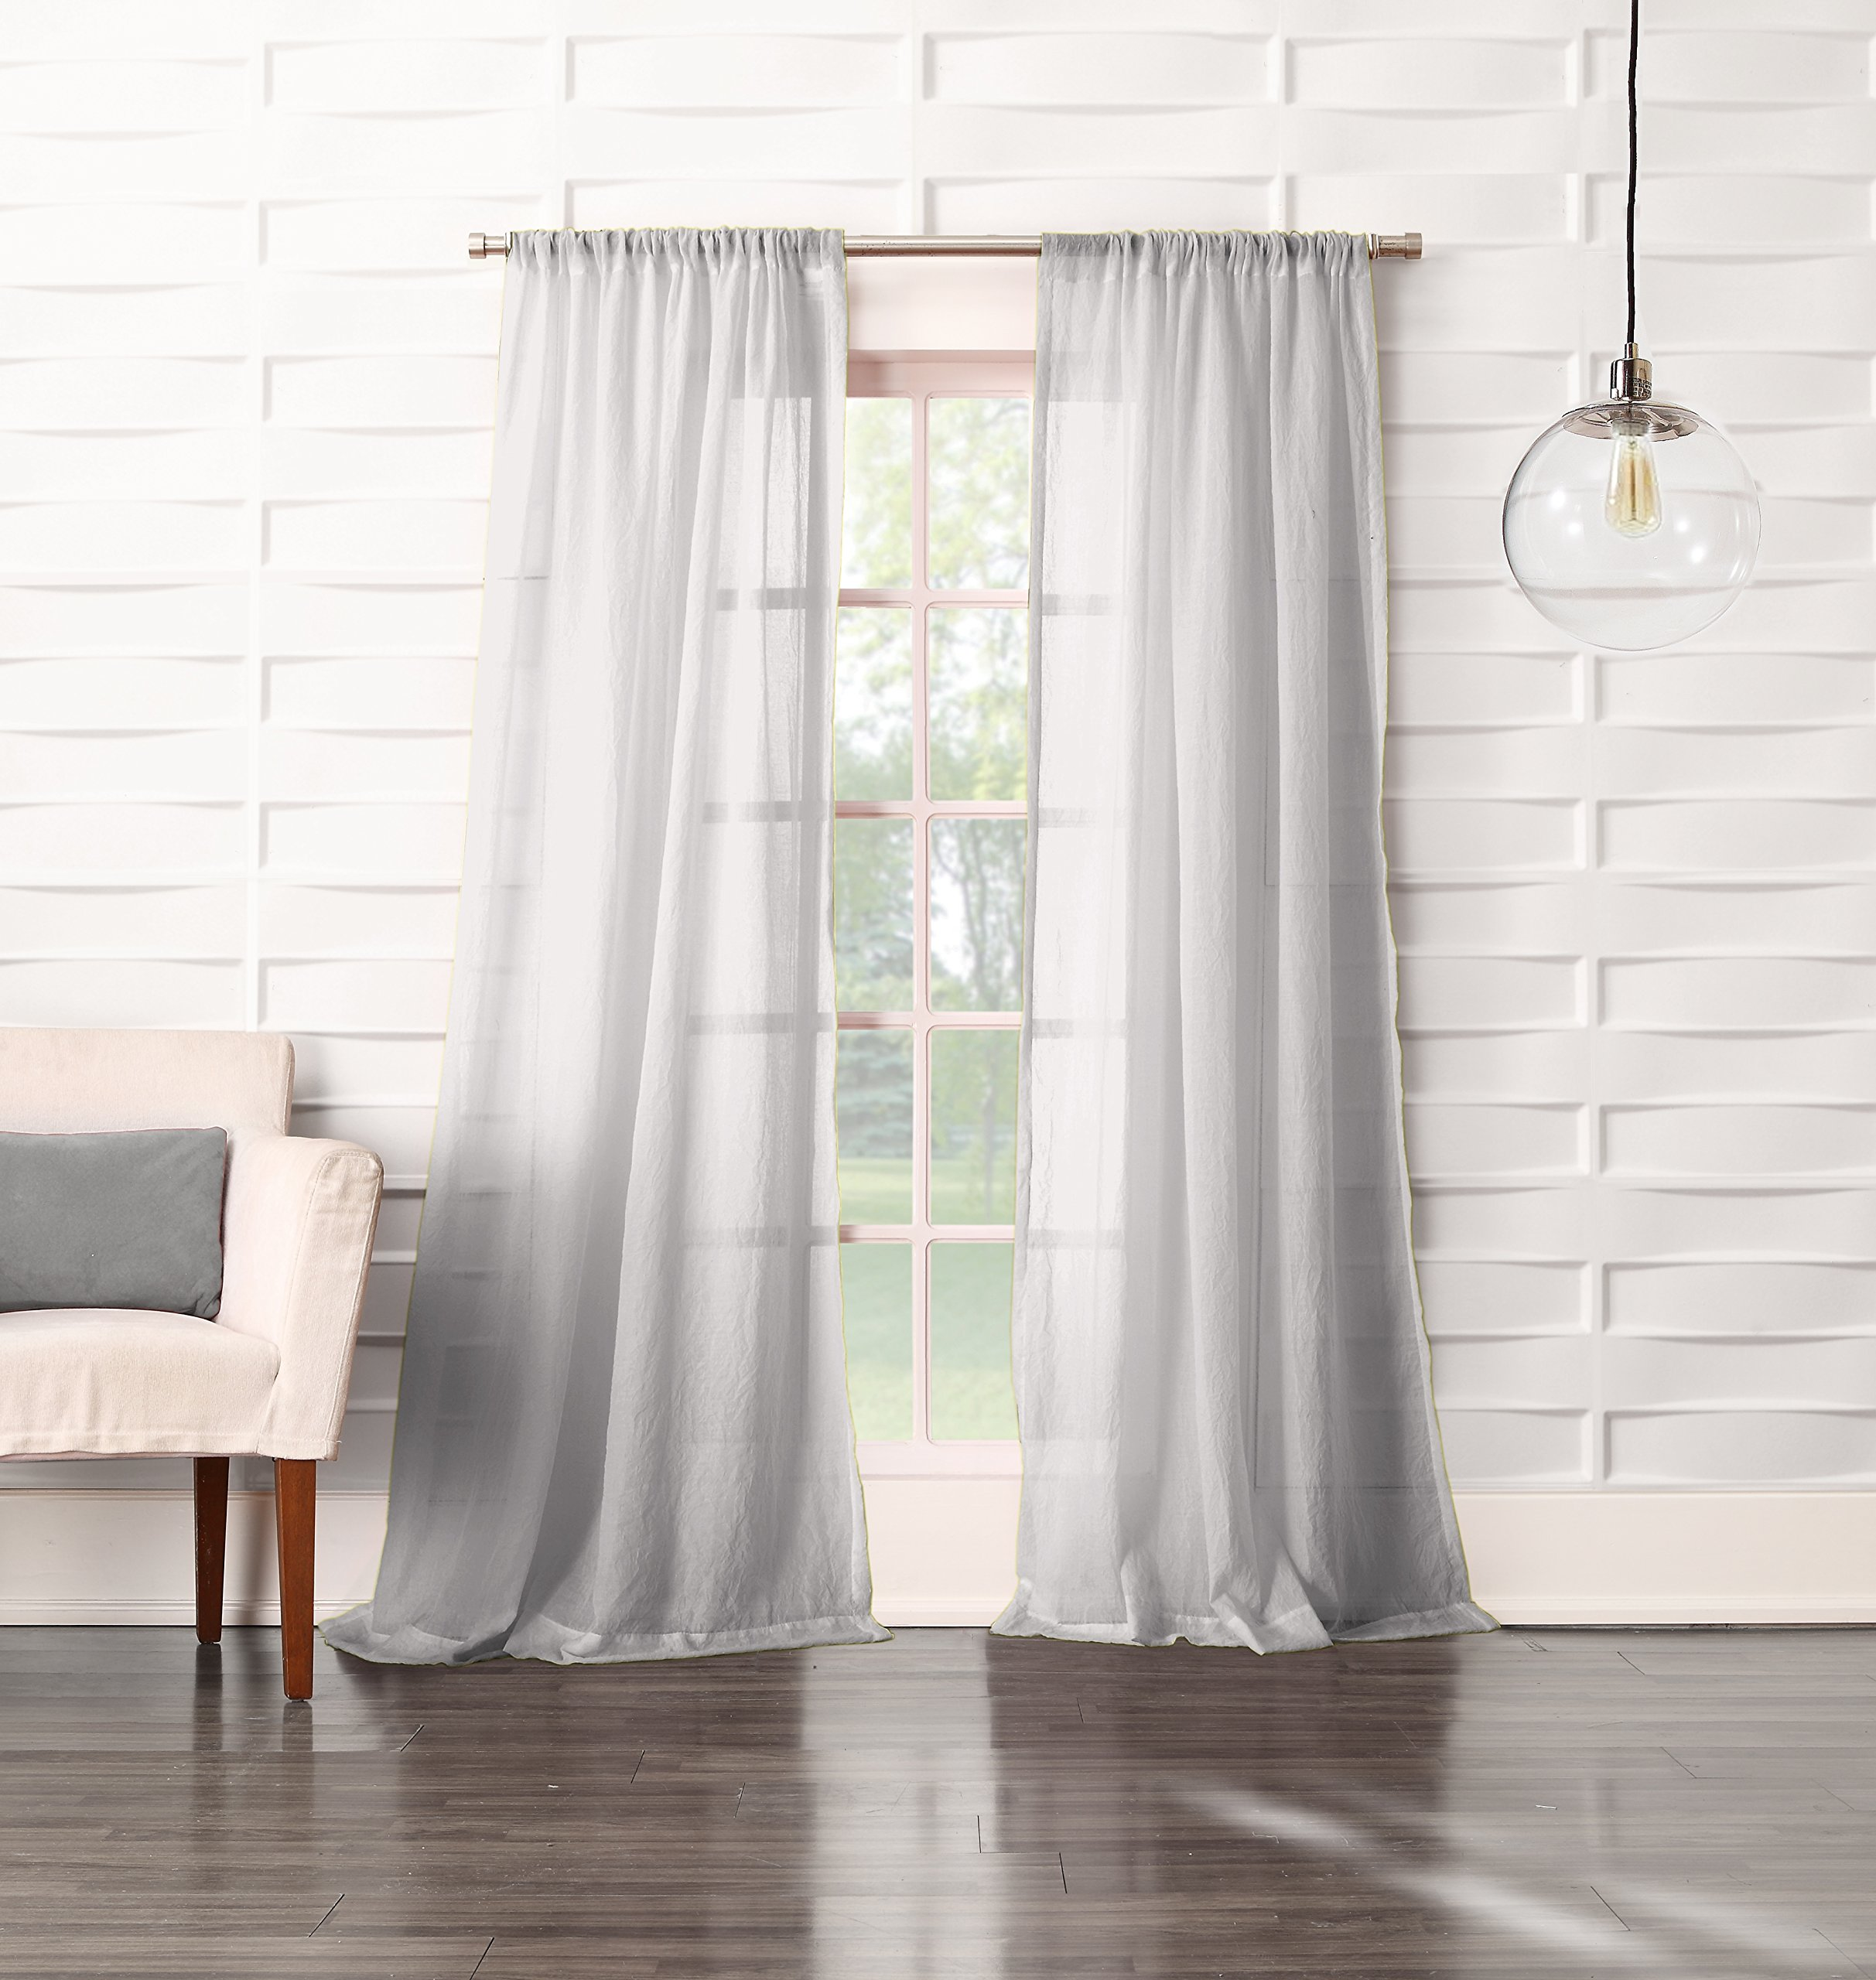 "No. 918 Tayla Crushed Sheer Voile Rod Pocket Curtain Panel, 50"" x 63"", Gray - Soft linen-like crushed texture Gently filters light while enhancing privacy Rod pocket design allows for easy hanging on a standard curtain rod - living-room-soft-furnishings, living-room, draperies-curtains-shades - 91WUahs1%2BCL -"